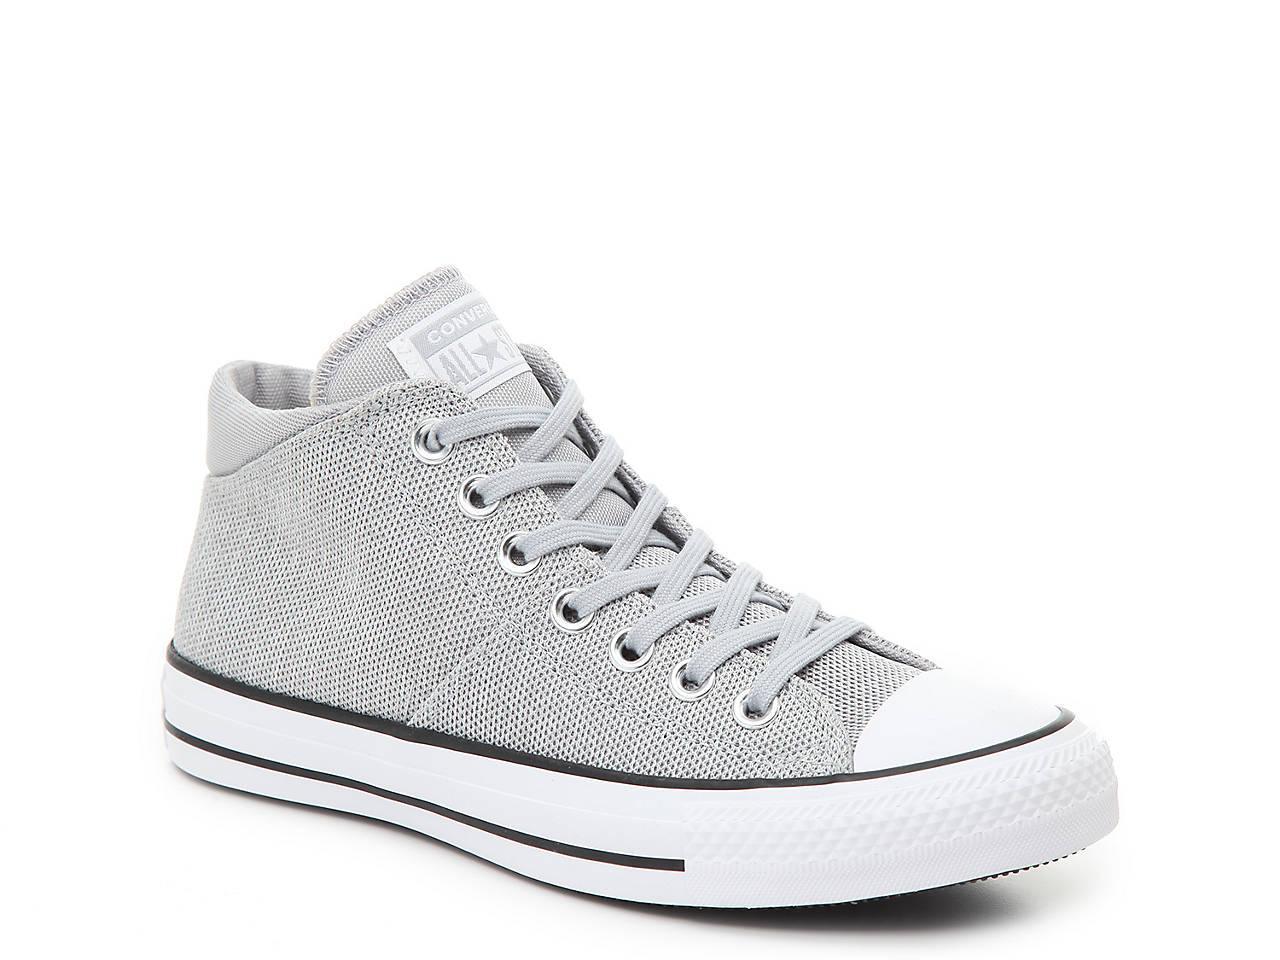 d1270ce6e0f5 Converse Chuck Taylor All Star Madison Mid-Top Sneaker - Women s ...